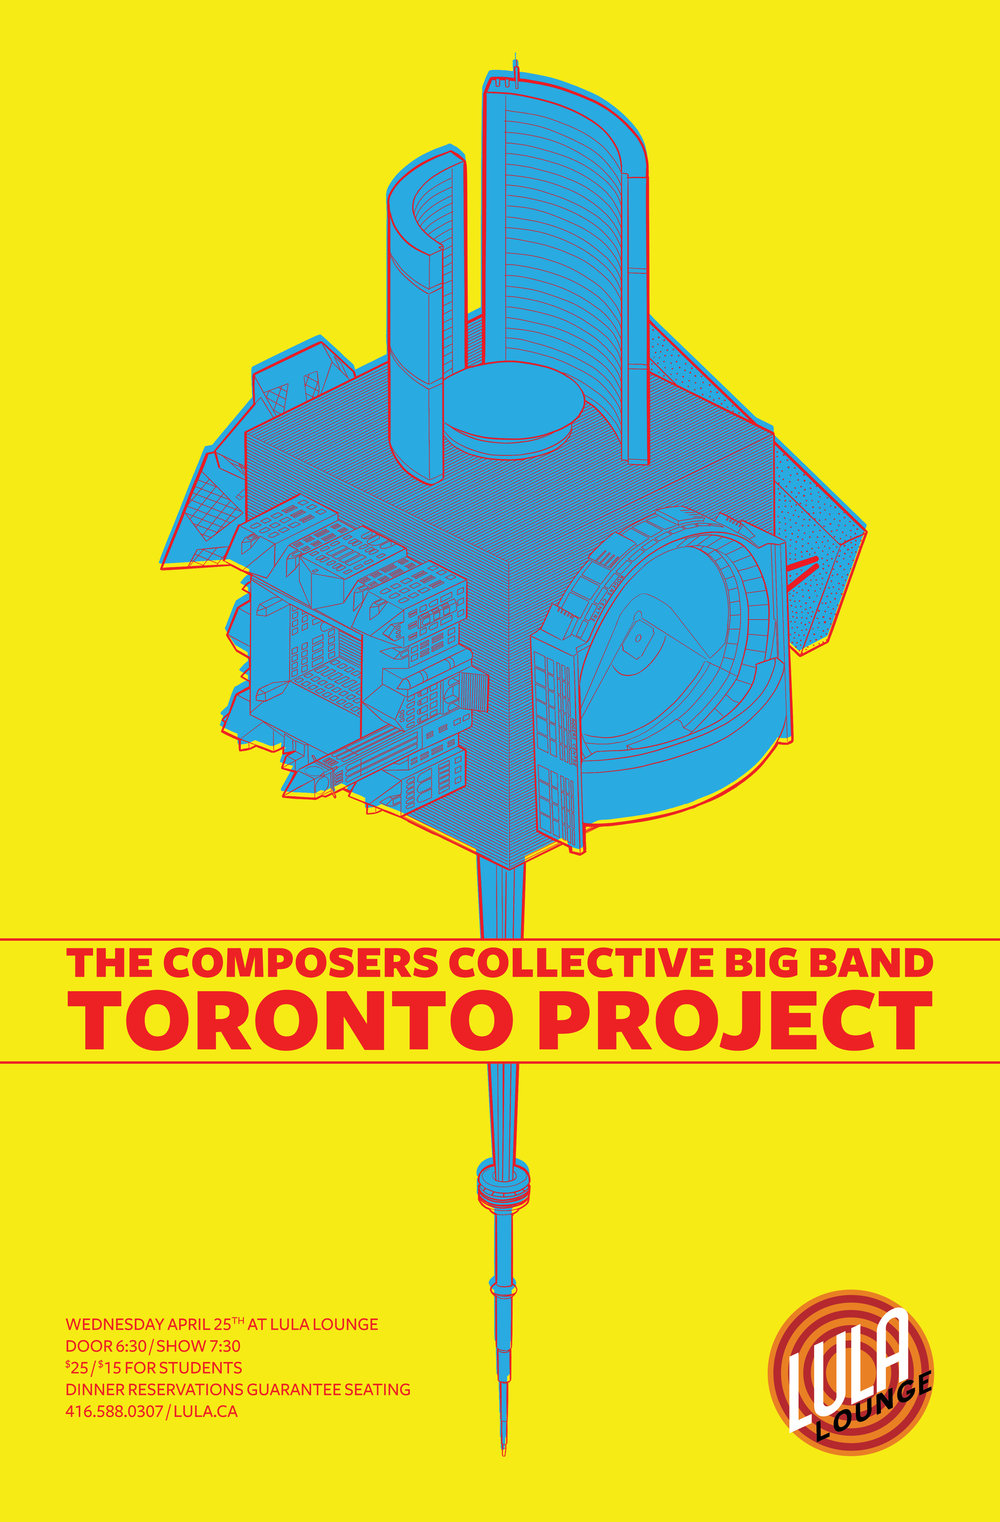 Come check out our biggest project yet! - April 25th 7:30PM at Lula Lounge in Toronto.